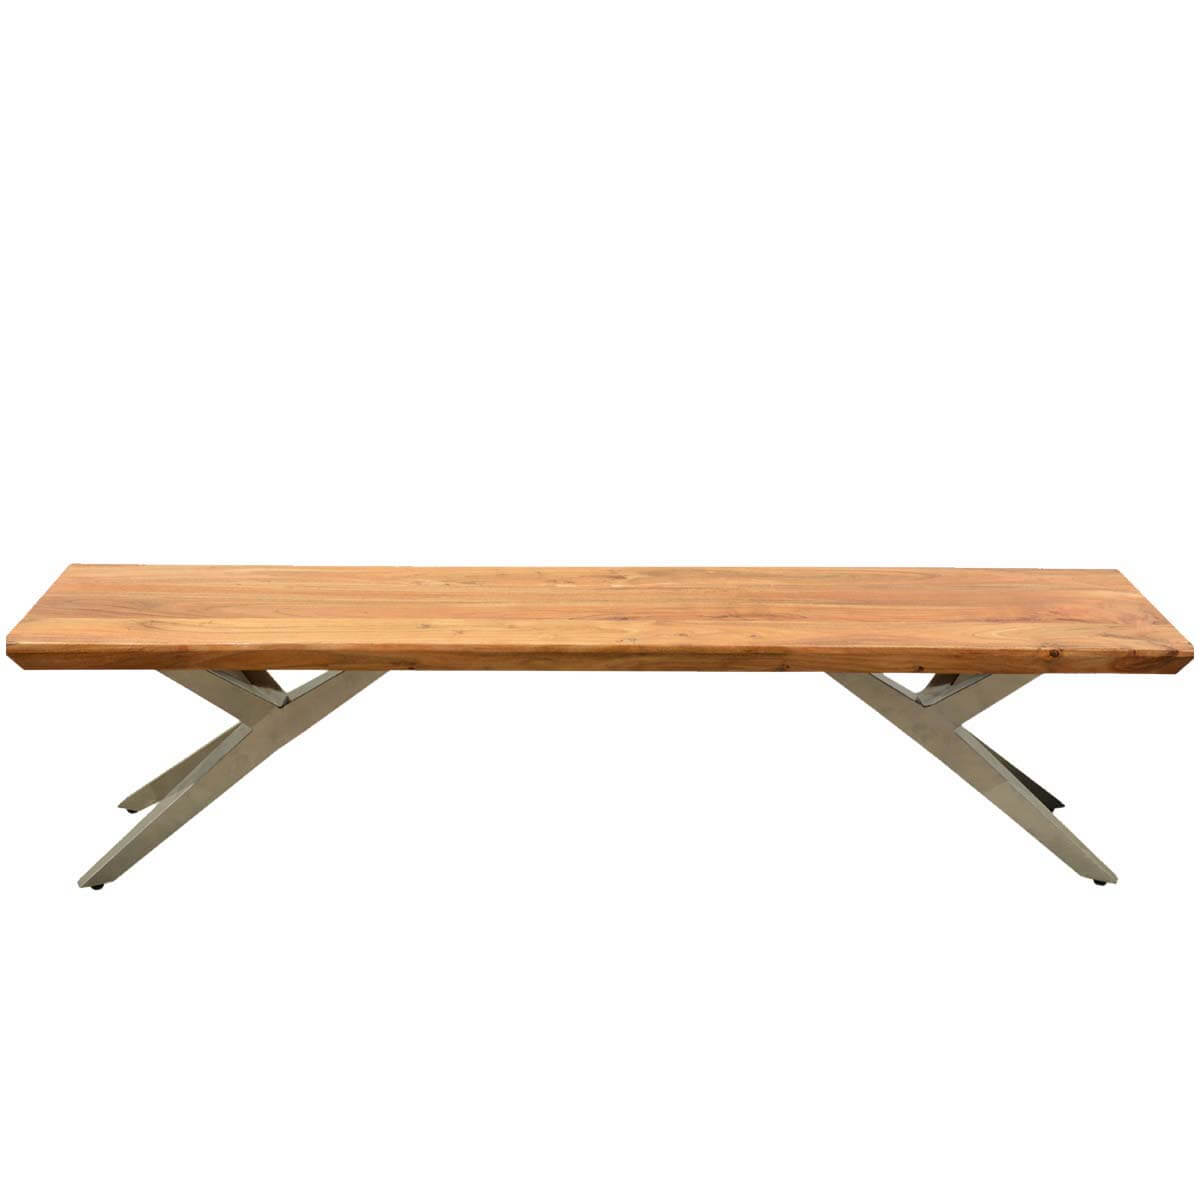 Burgess Contemporary Acacia Wood Industrial Airloft Bench